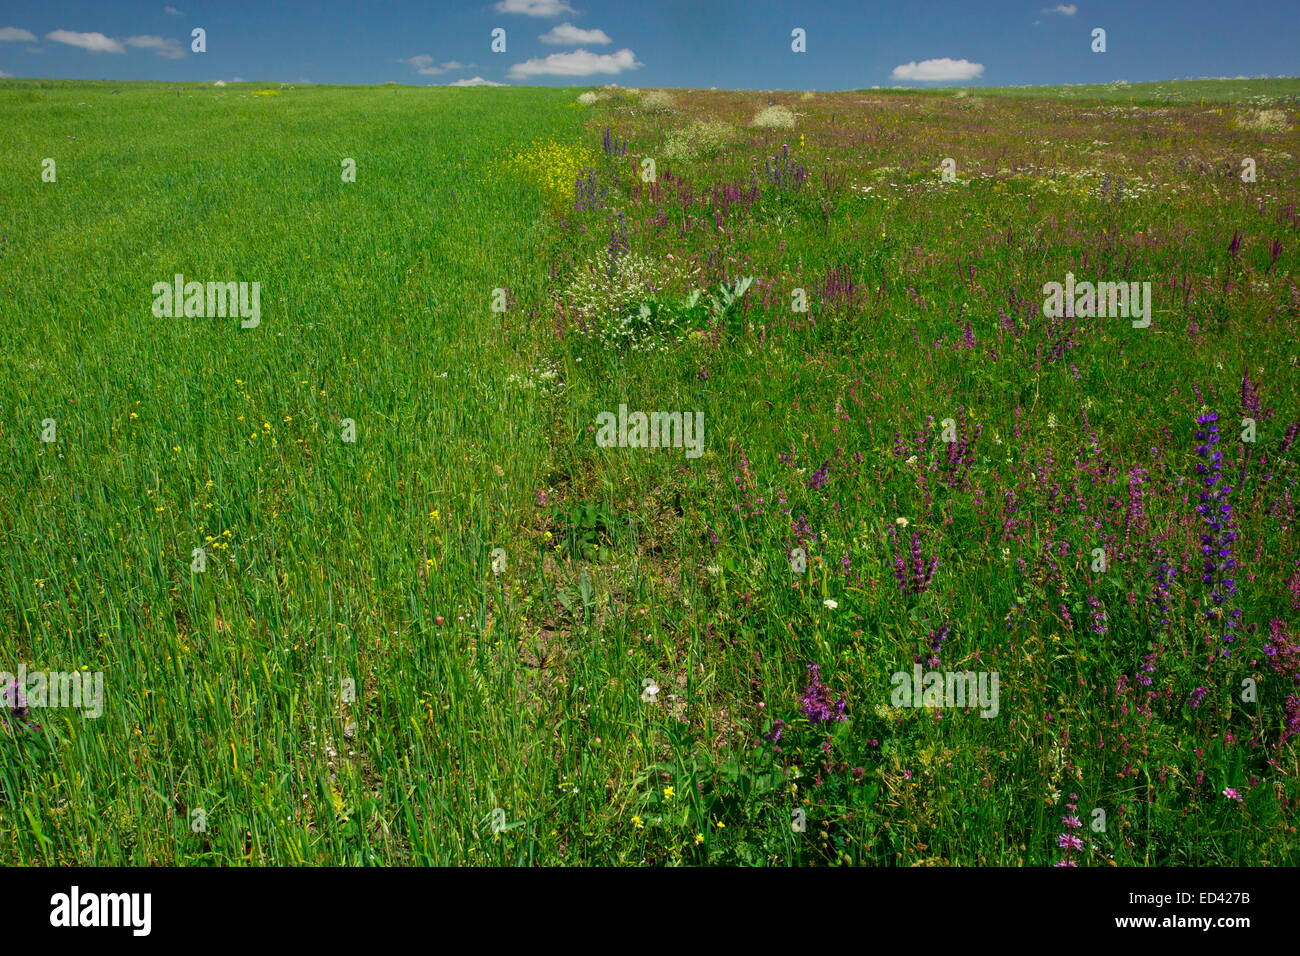 Adjacent fields showing cultivated monoculture and flowery fallow field for comparison. East Turkey - Stock Image